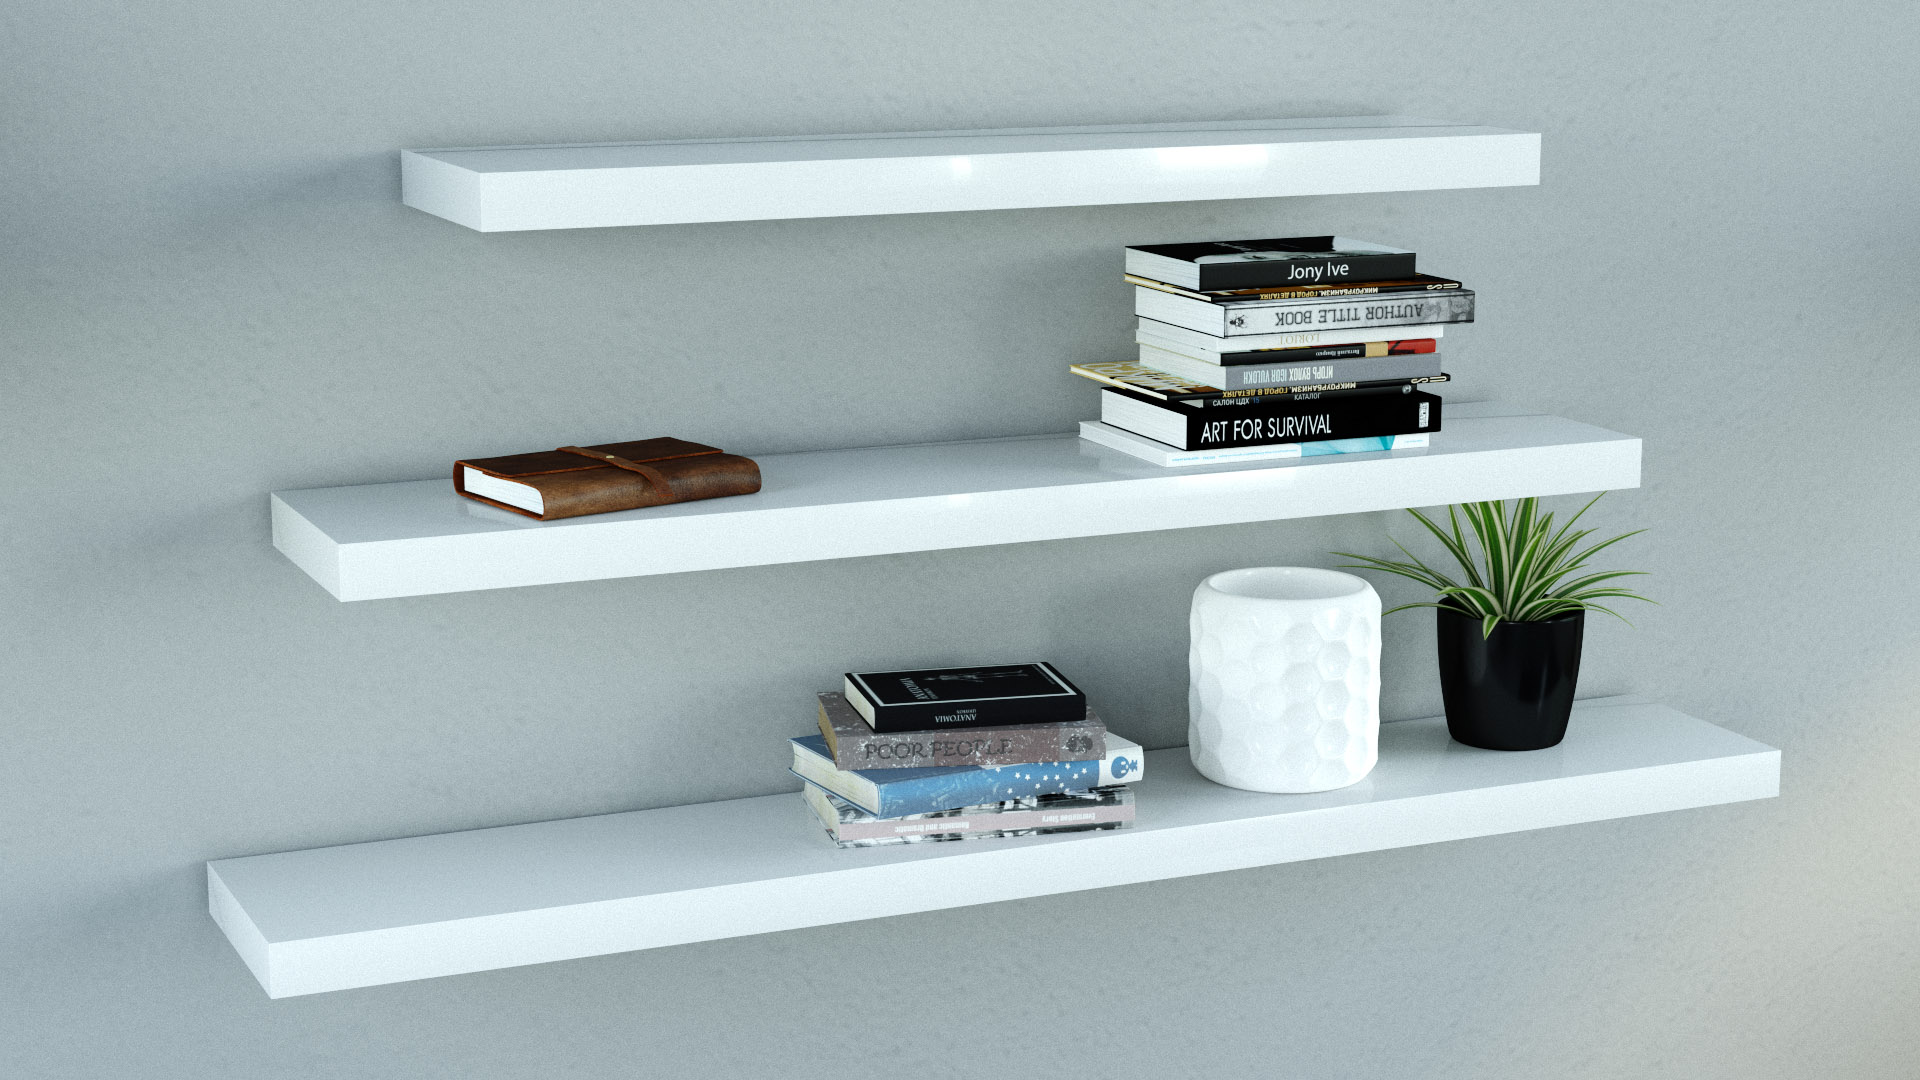 gloss white floating shelves triple mix the shelving high heavy duty shelf pins coat and shoe rack pine supports hanging for cable box ematic dvd player wall mount open cupboard